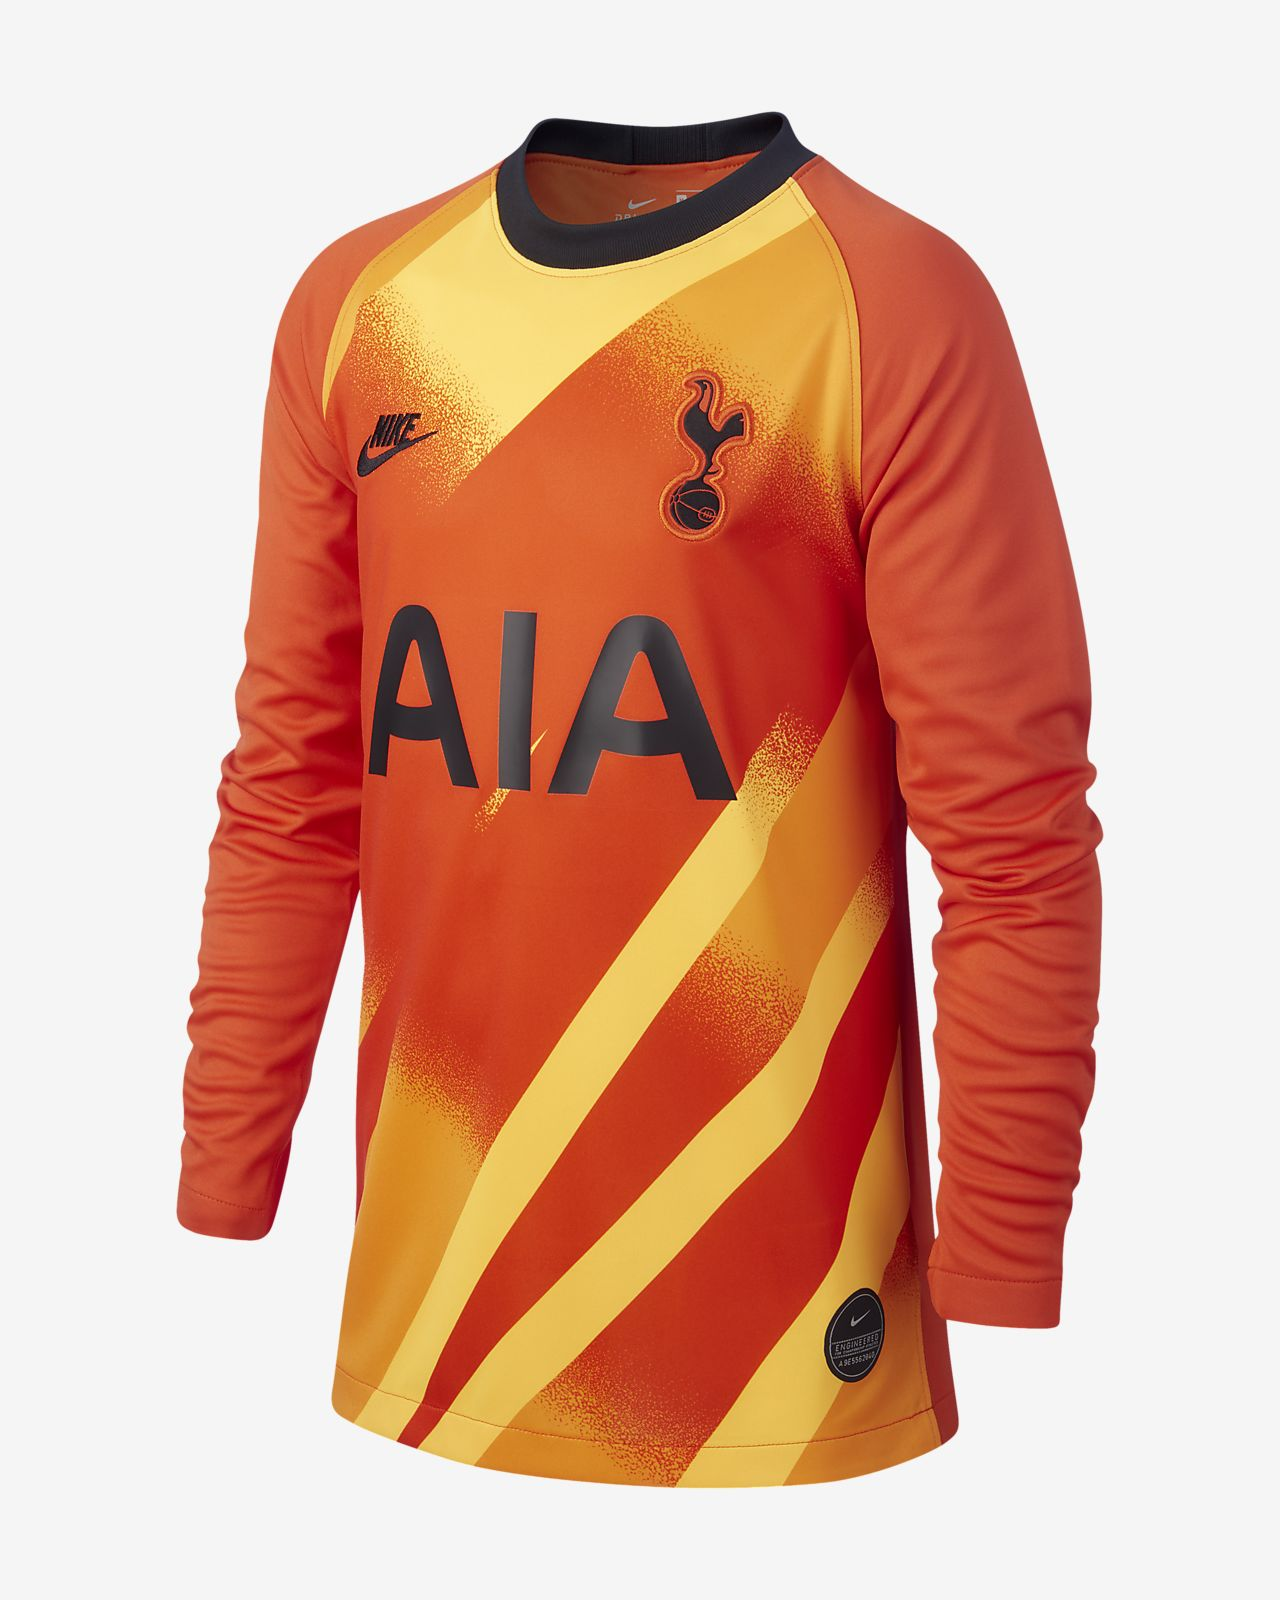 Maillot de football Tottenham Hotspur 2019/20 Stadium Goalkeeper pour Enfant plus âgé